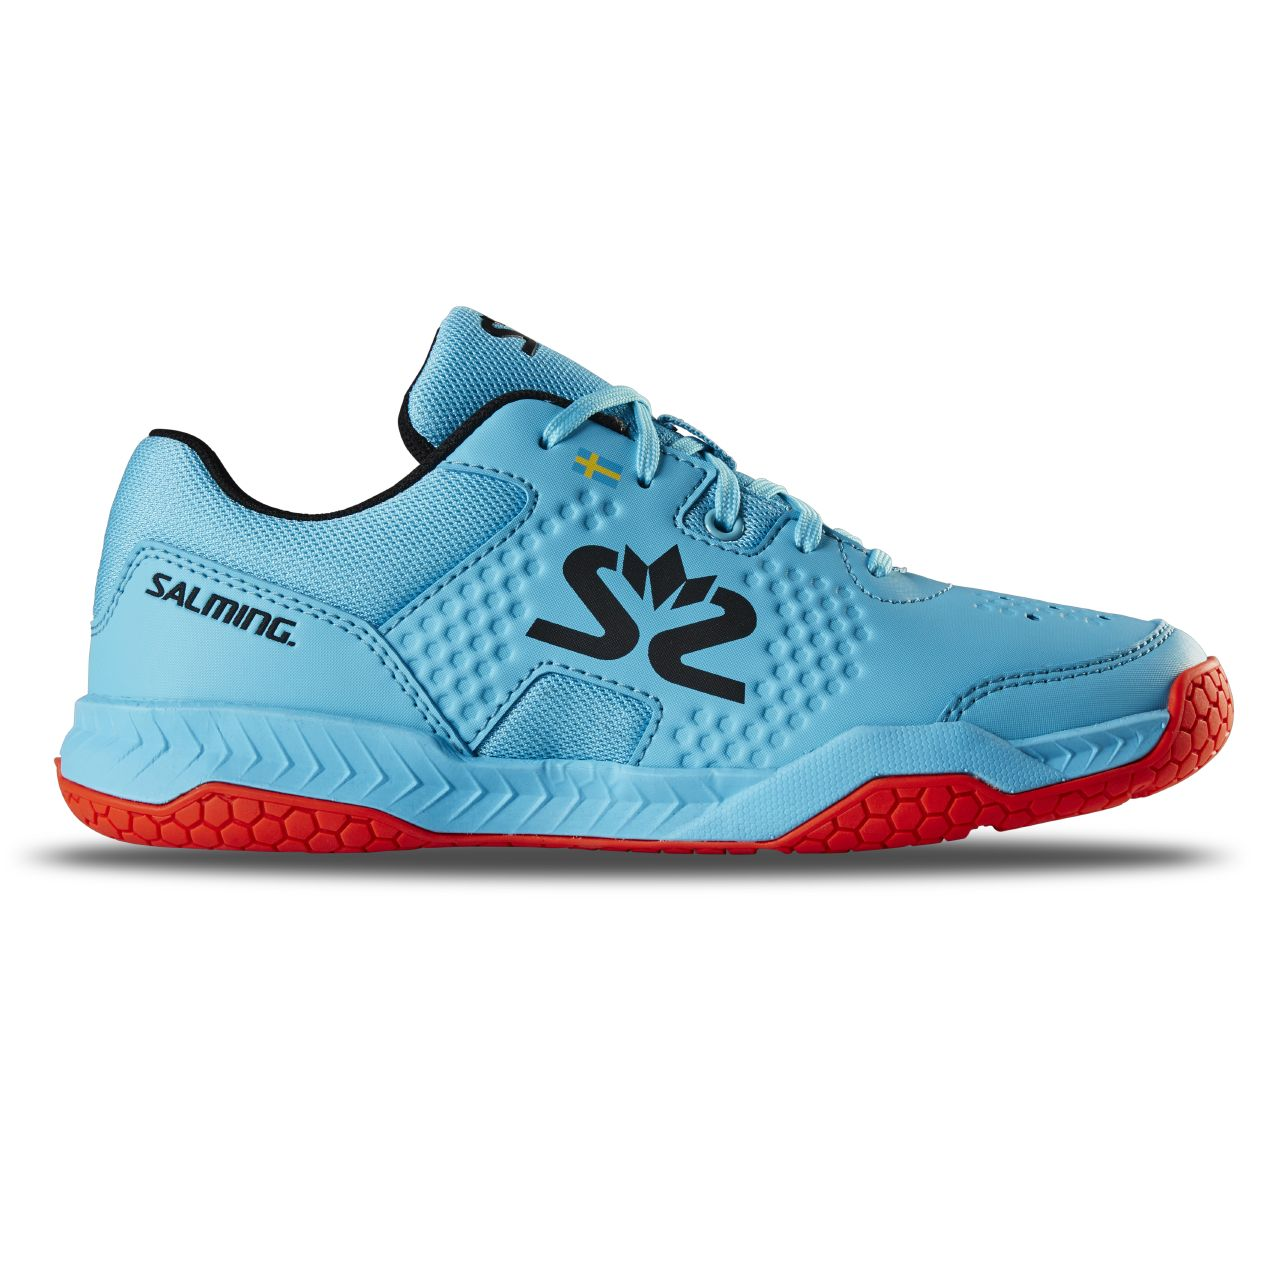 Salming Hawk Court Shoe Junior Blue/Red 5,5 UK - 39 EUR - 25 cm